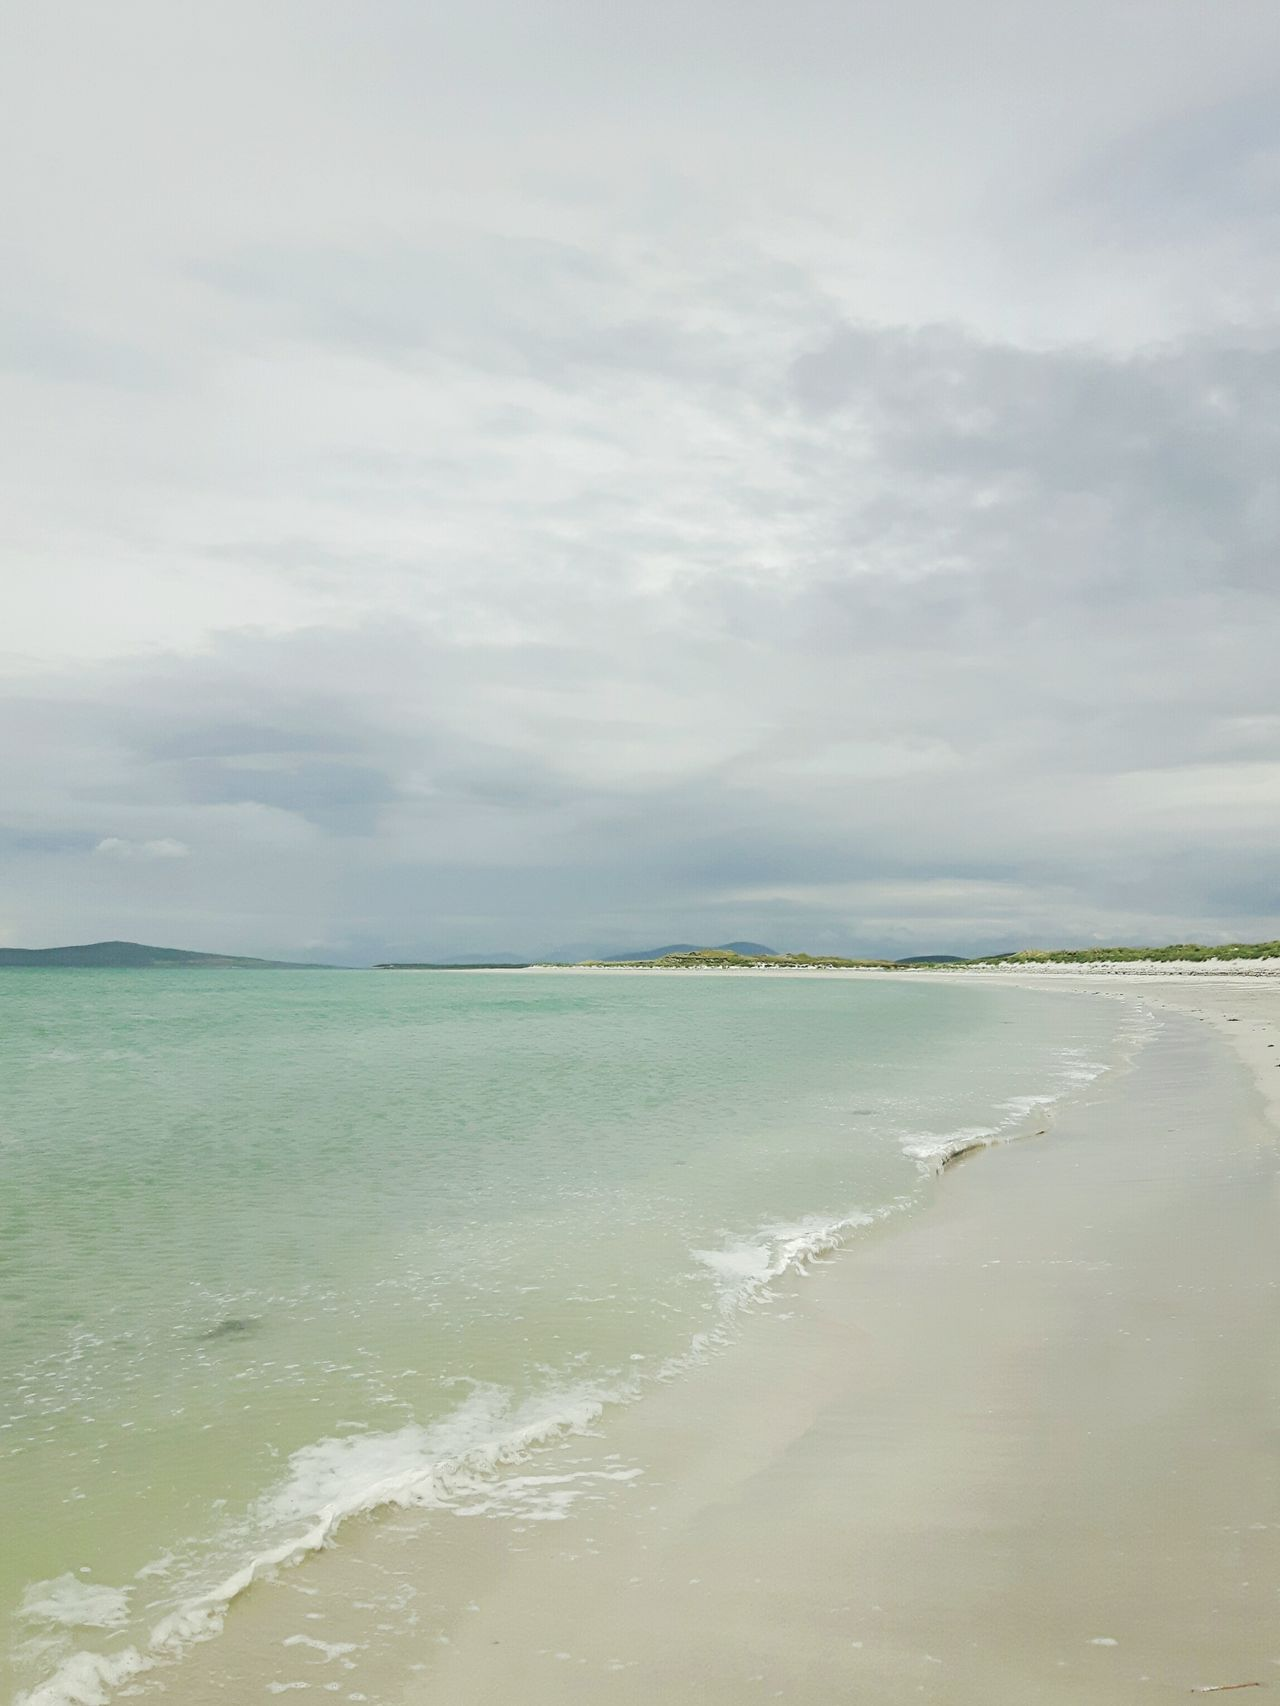 Beach Sea Scottish Isles Travel Destinations Live For The Story Hebridies The Great Outdoors - 2017 EyeEm Awards EyeEmNewHere Scotland Scotlandlover Scotlandsbeauty Outerhebrides Westernisles Scottishbeach Clachan Clachansands Traigh Lingeigh Uist Beauty In Nature Tranquility Tide